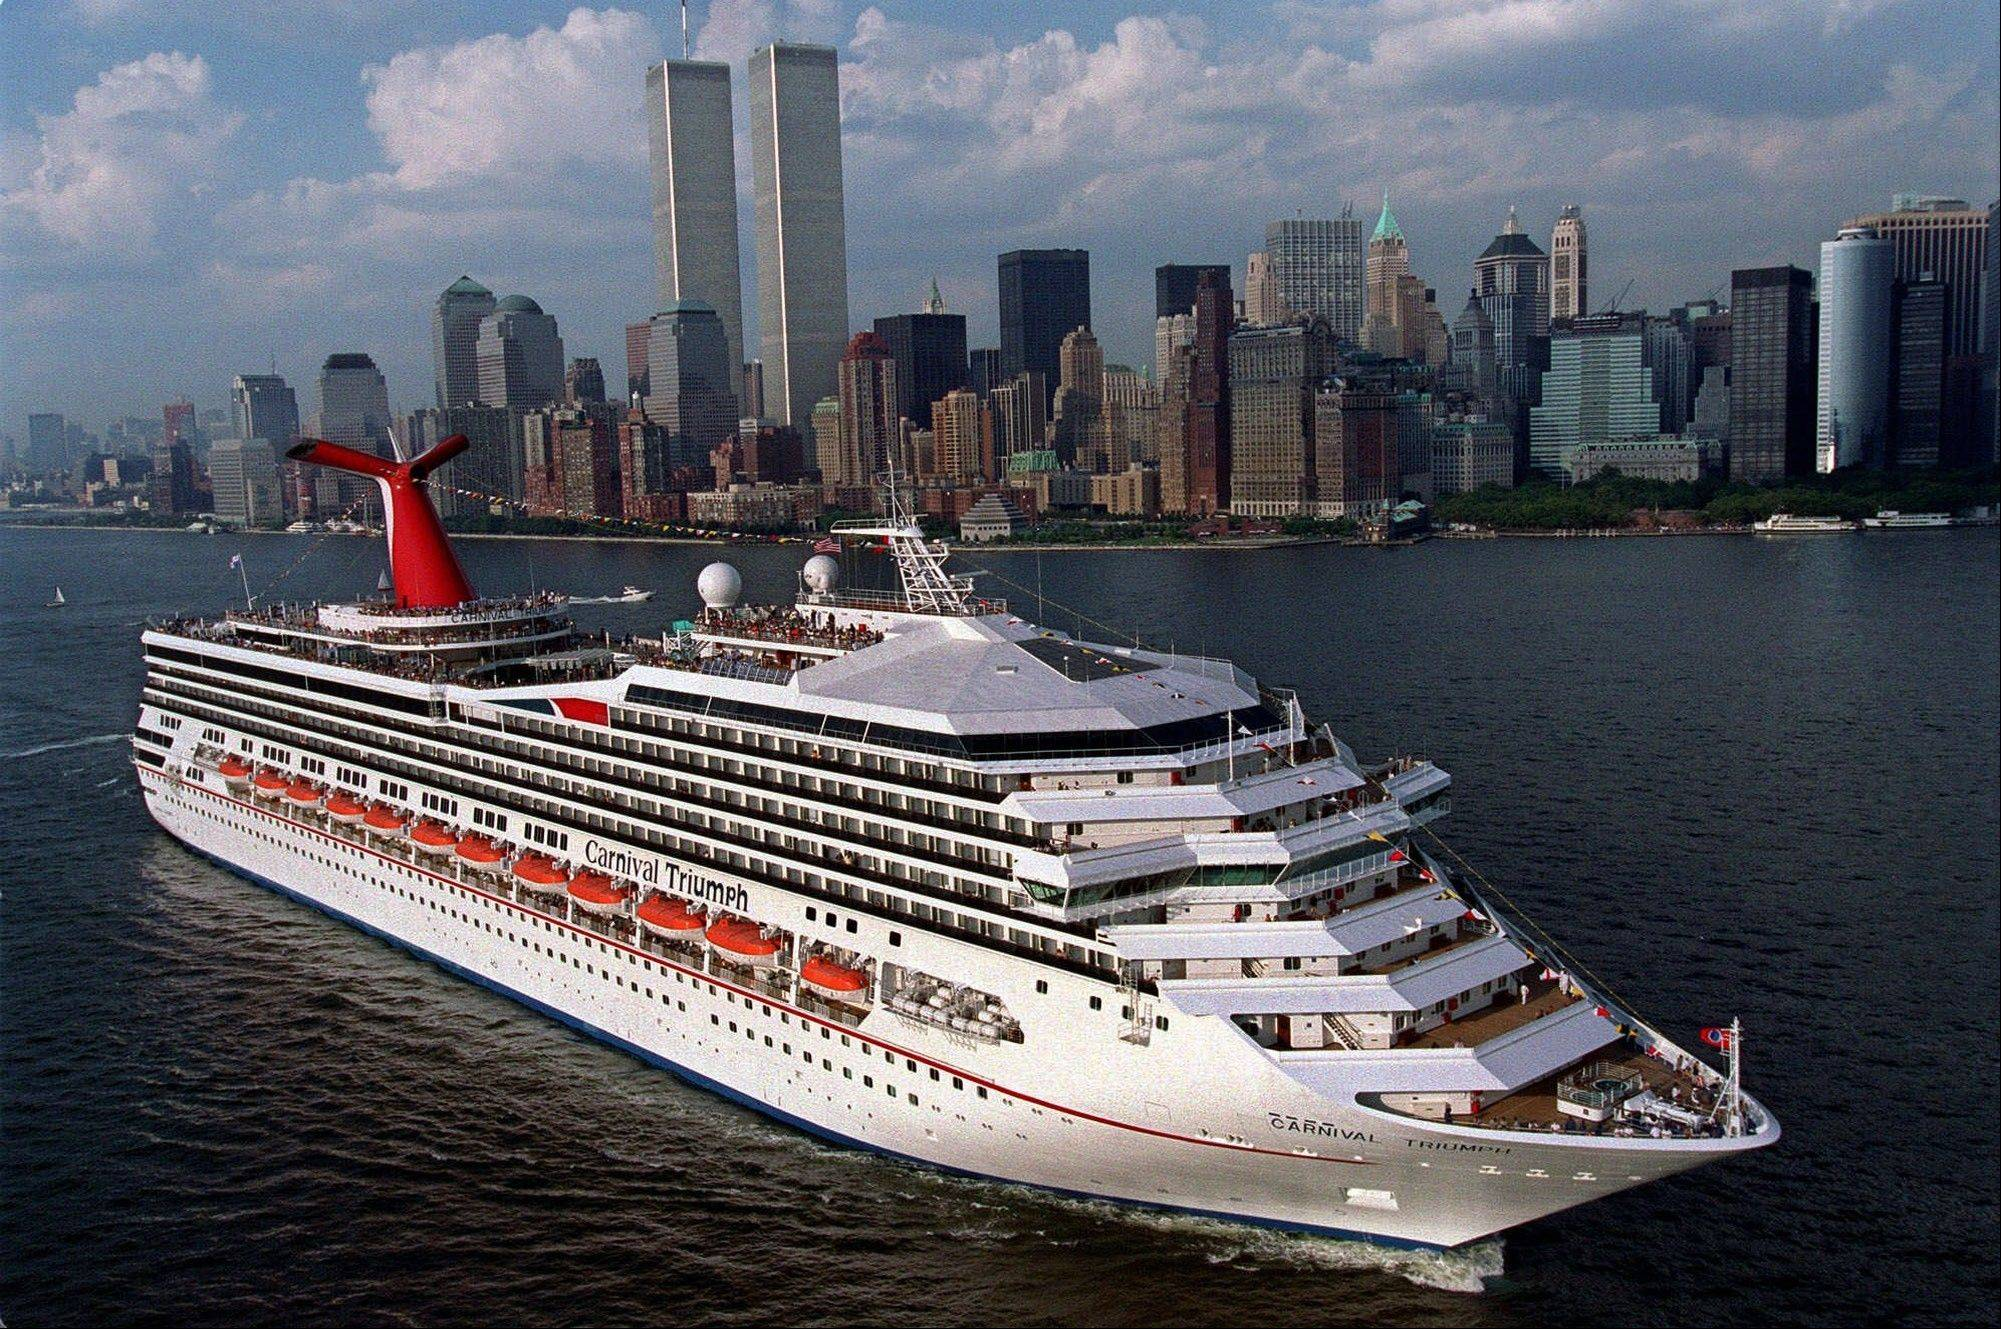 The MS Carnival Triumph is seen departing New York harbor on her inaugural voyage in 1999. Carnival Cruise Lines said Sunday an engine room fire had disabled the cruise ship about 150 miles off the Yucatan Peninsula with 3,143 passengers and 1,086 crew members on board.